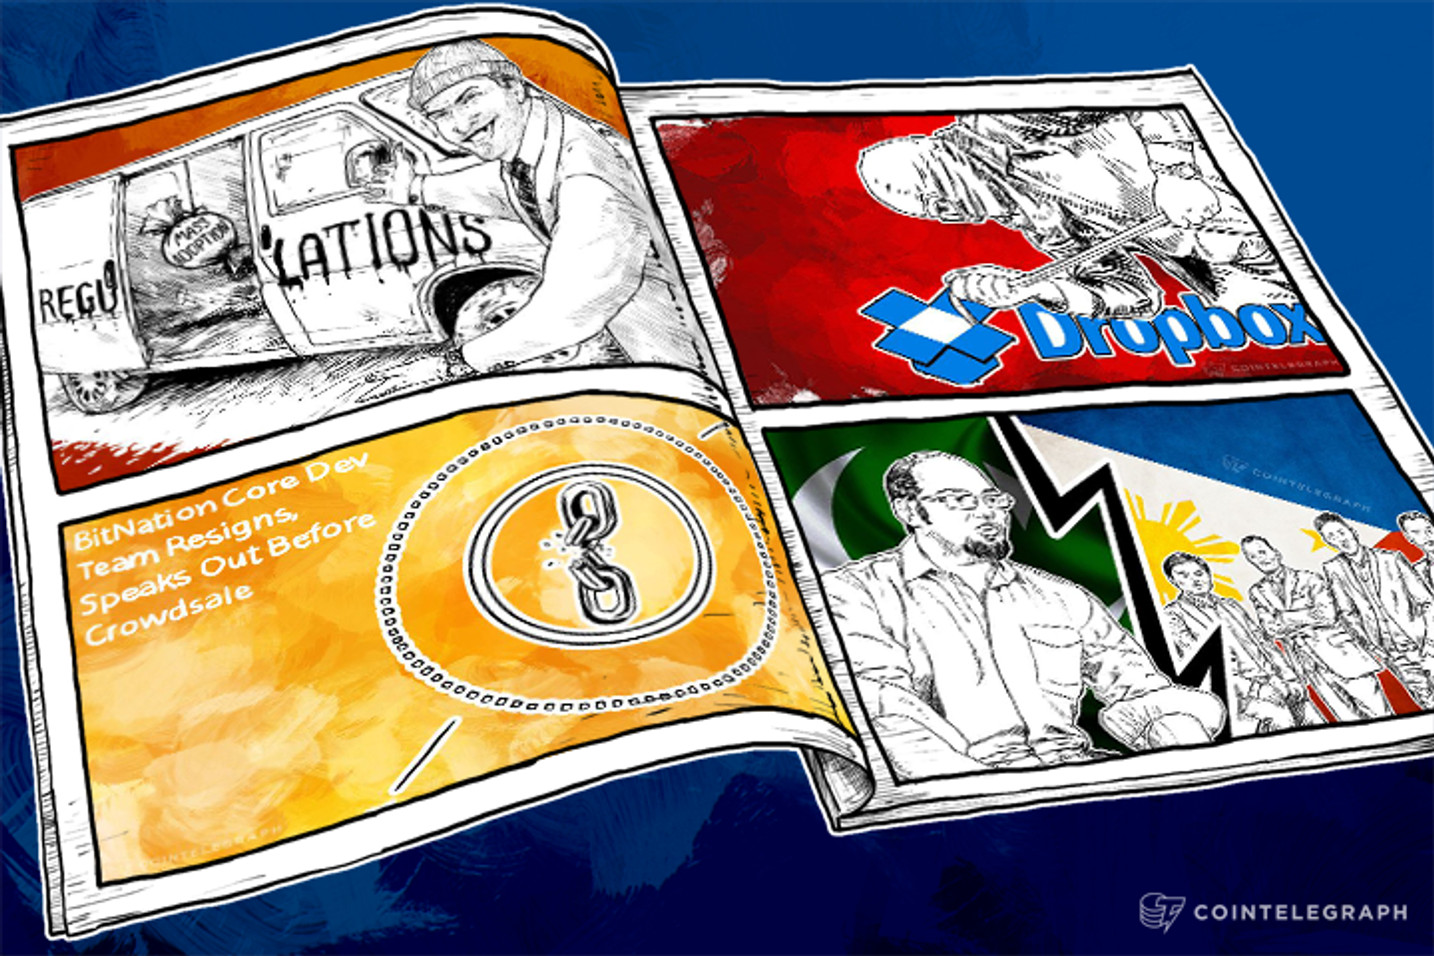 Weekend Roundup: Trouble at Bitnation and Dropbox, Promising Projects in Pakistan and the Philippines